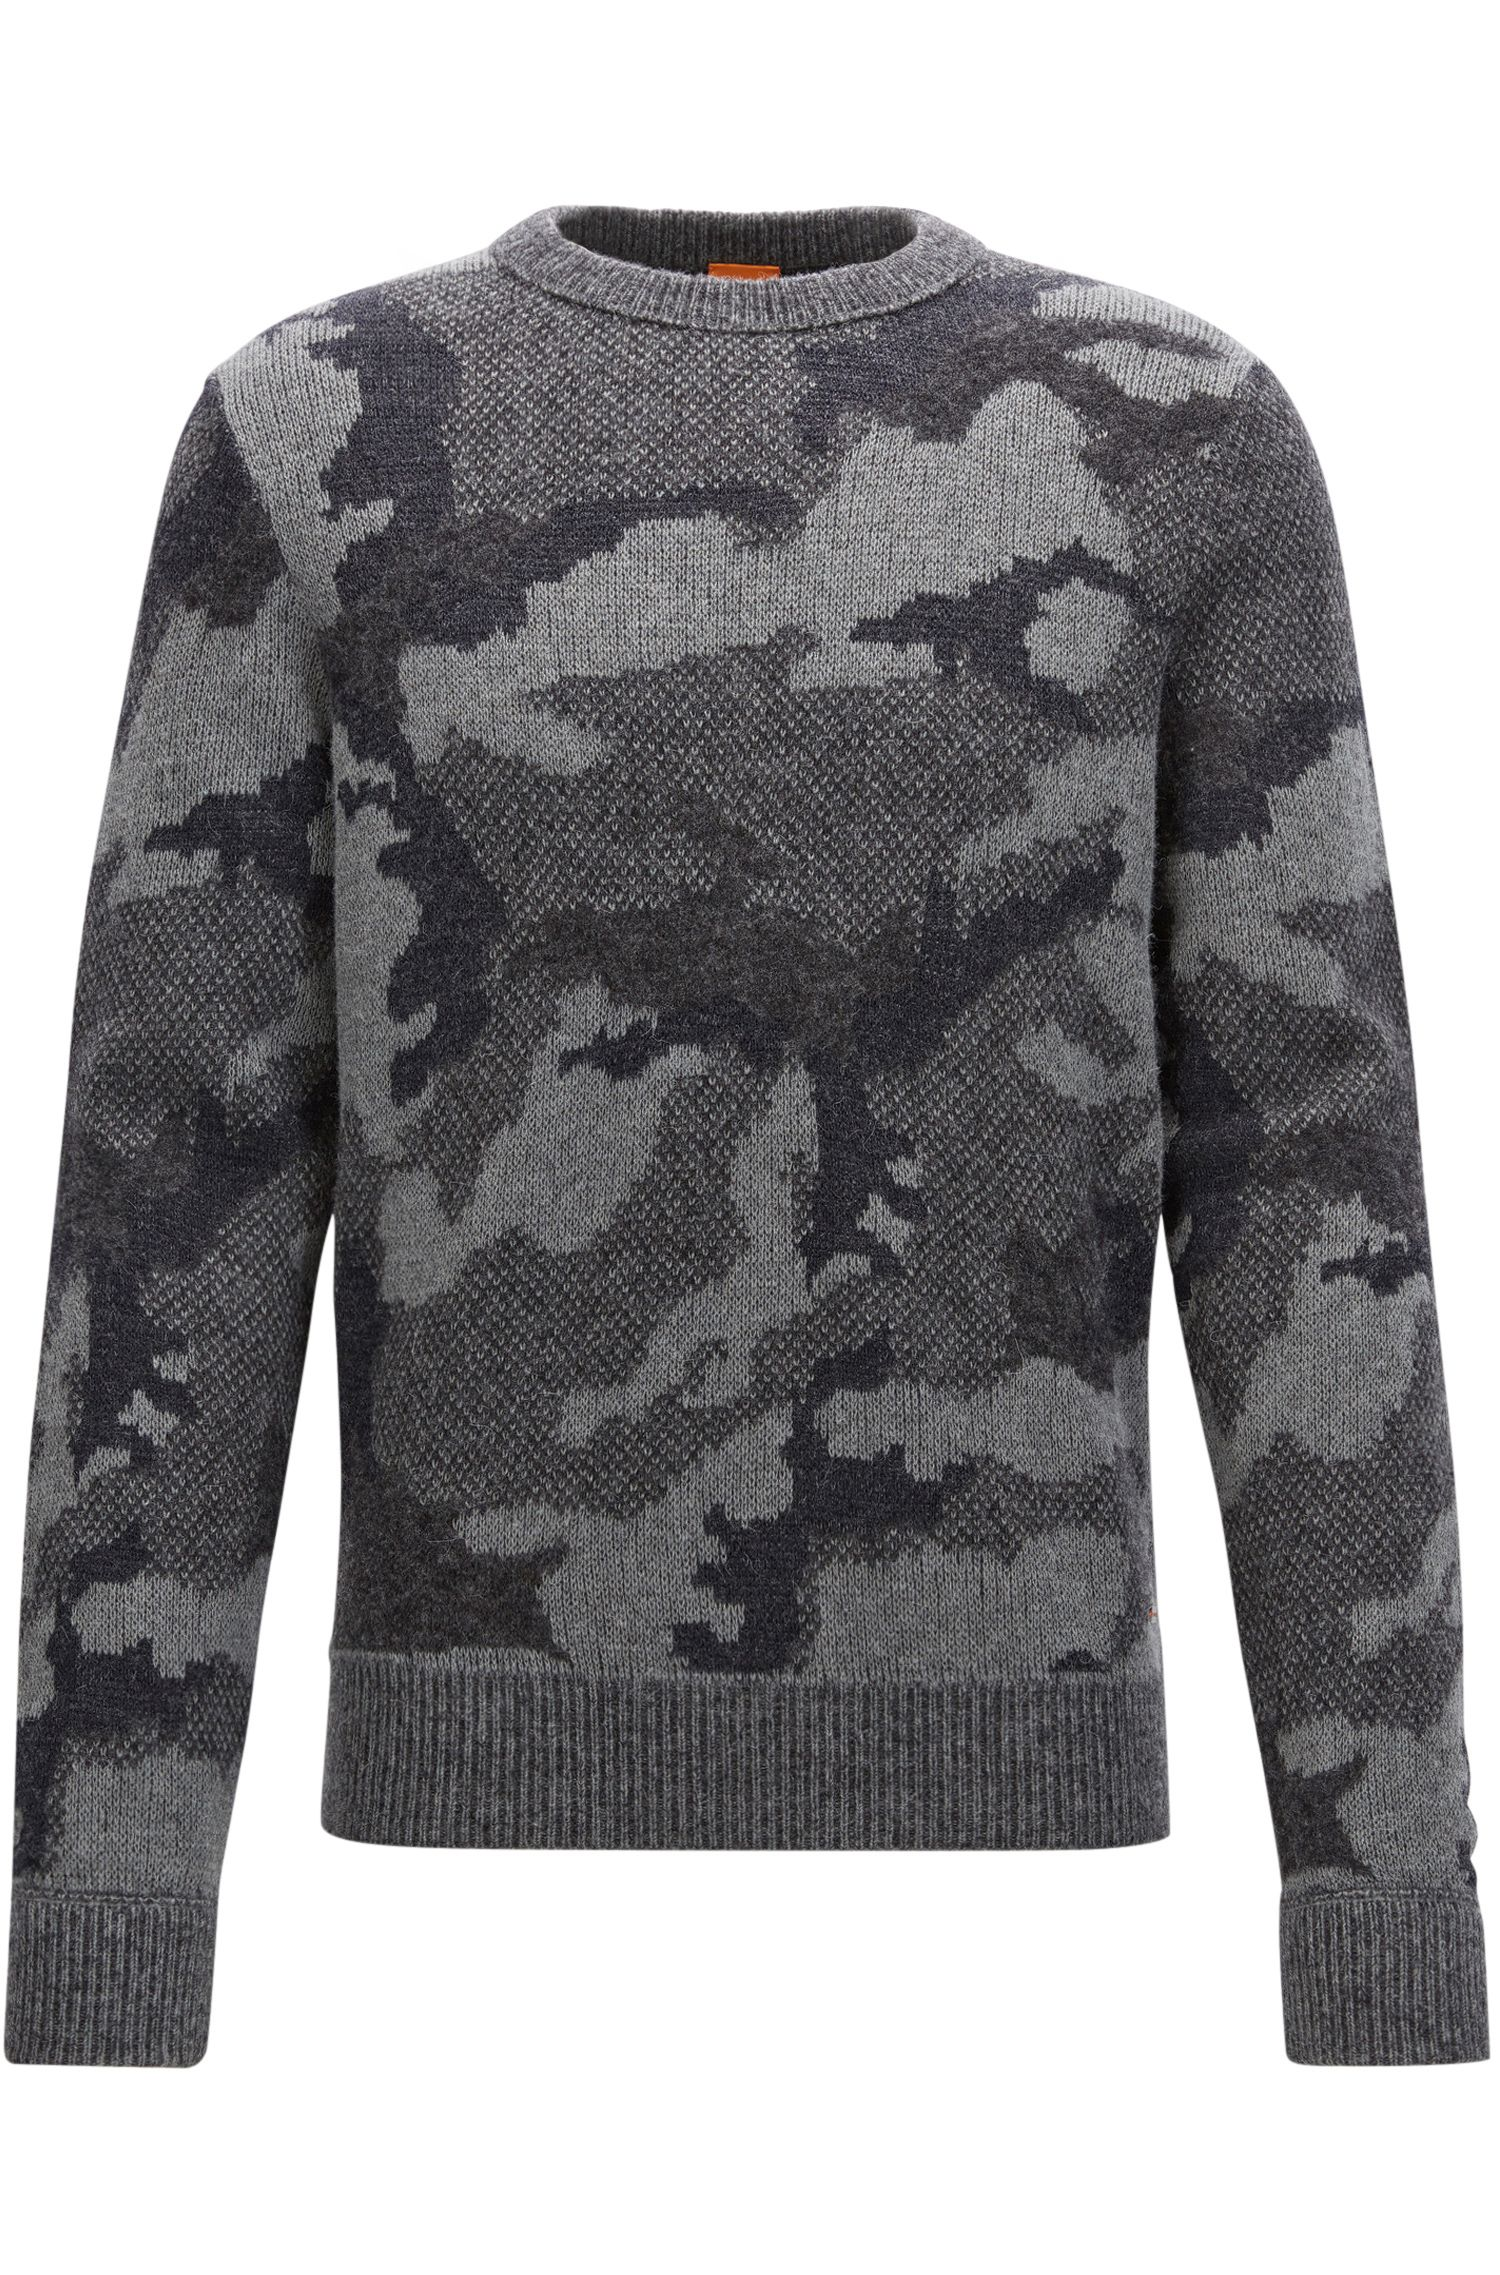 'Armieto' | Camouflage Wool Blend Sweater